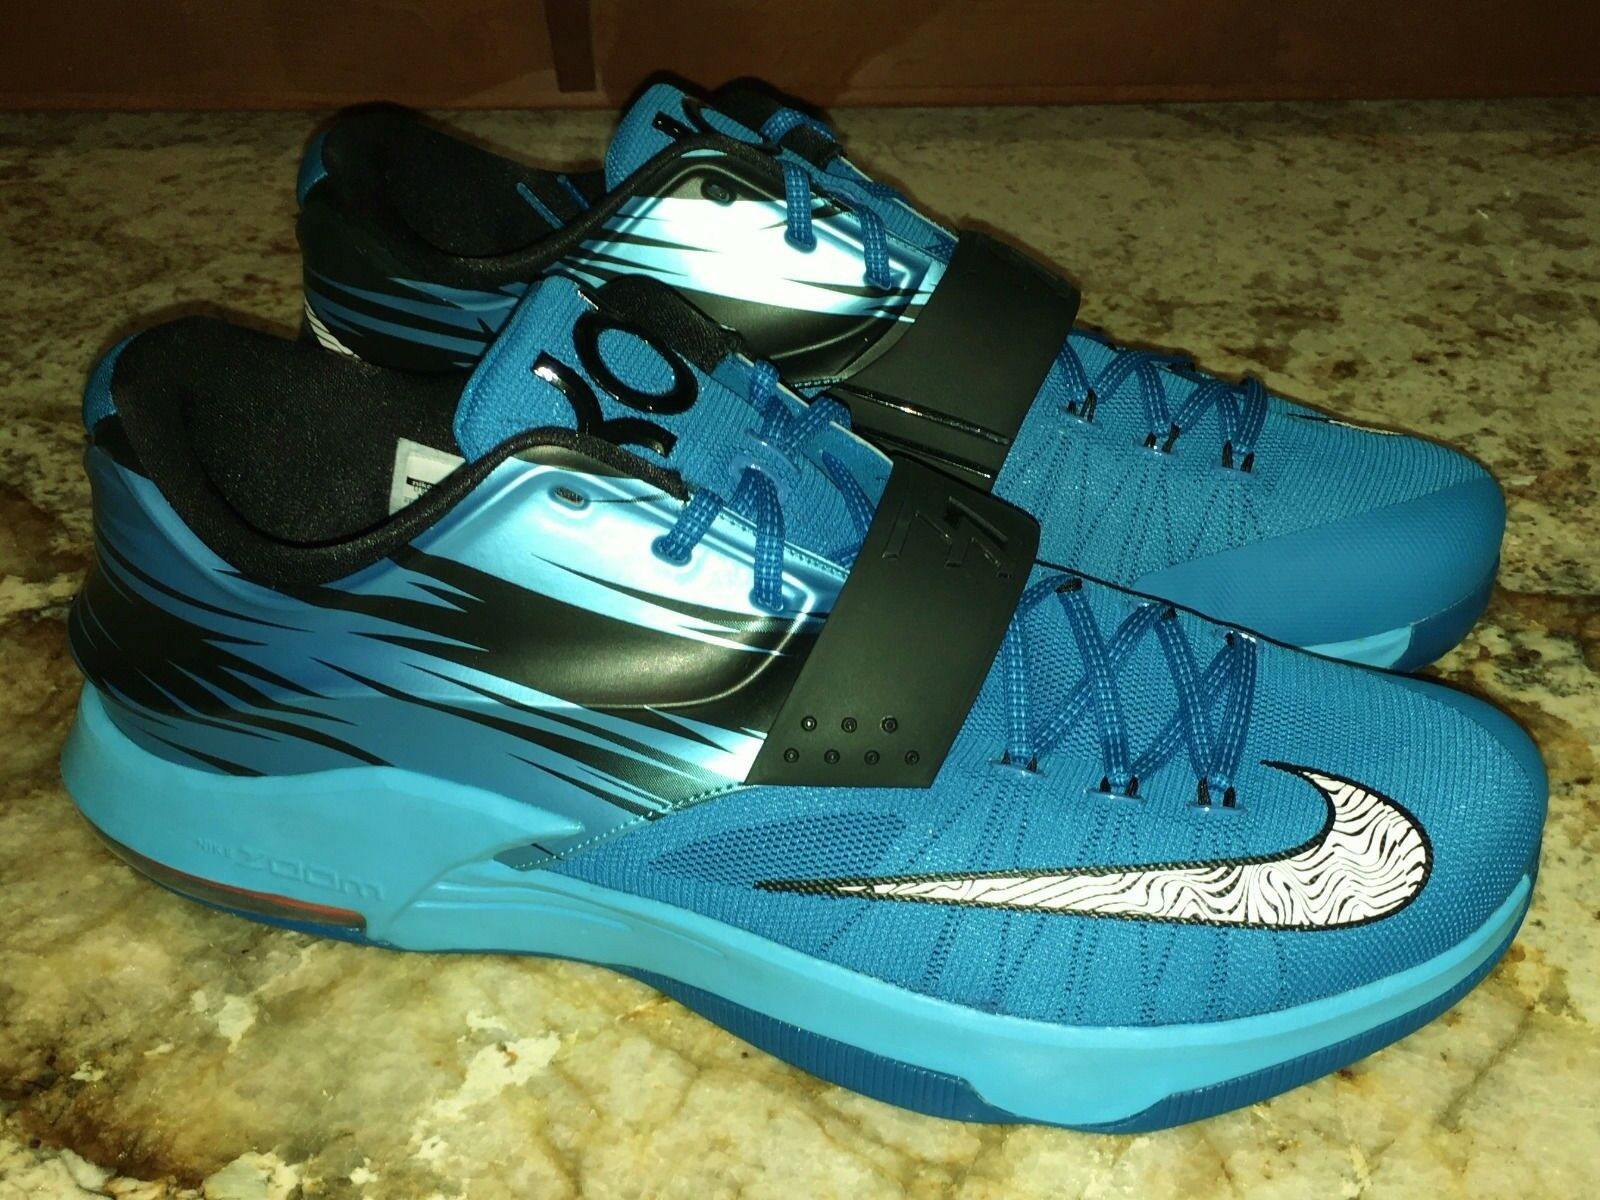 NIKE KD VII 7 Clearwater Blue Black Basketball Shoes Sneakers NEW Mens Sz 17 18 best-selling model of the brand